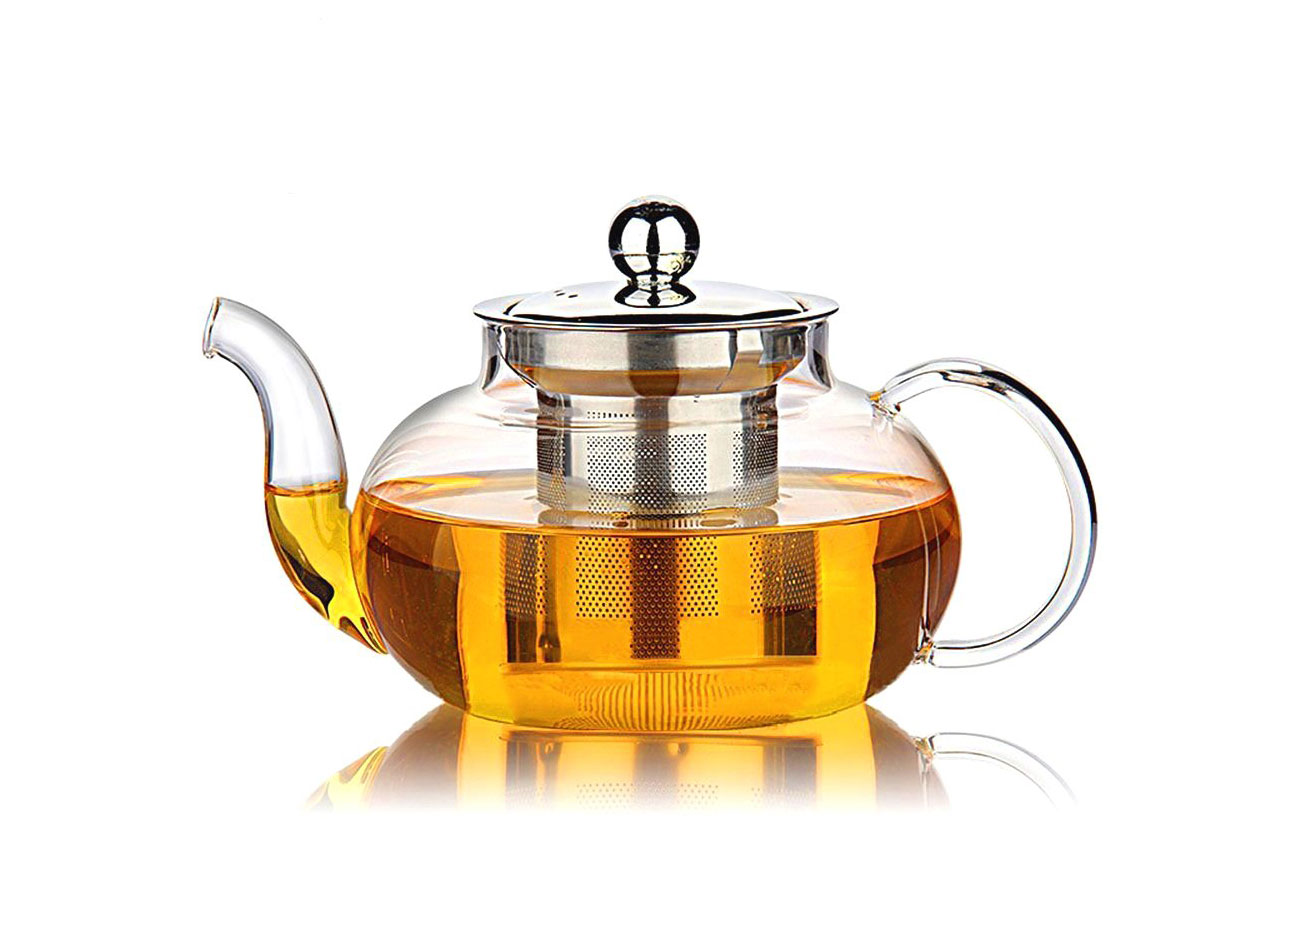 Hiware Good Glass Teapot with Stainless Steel Infuser & Lid